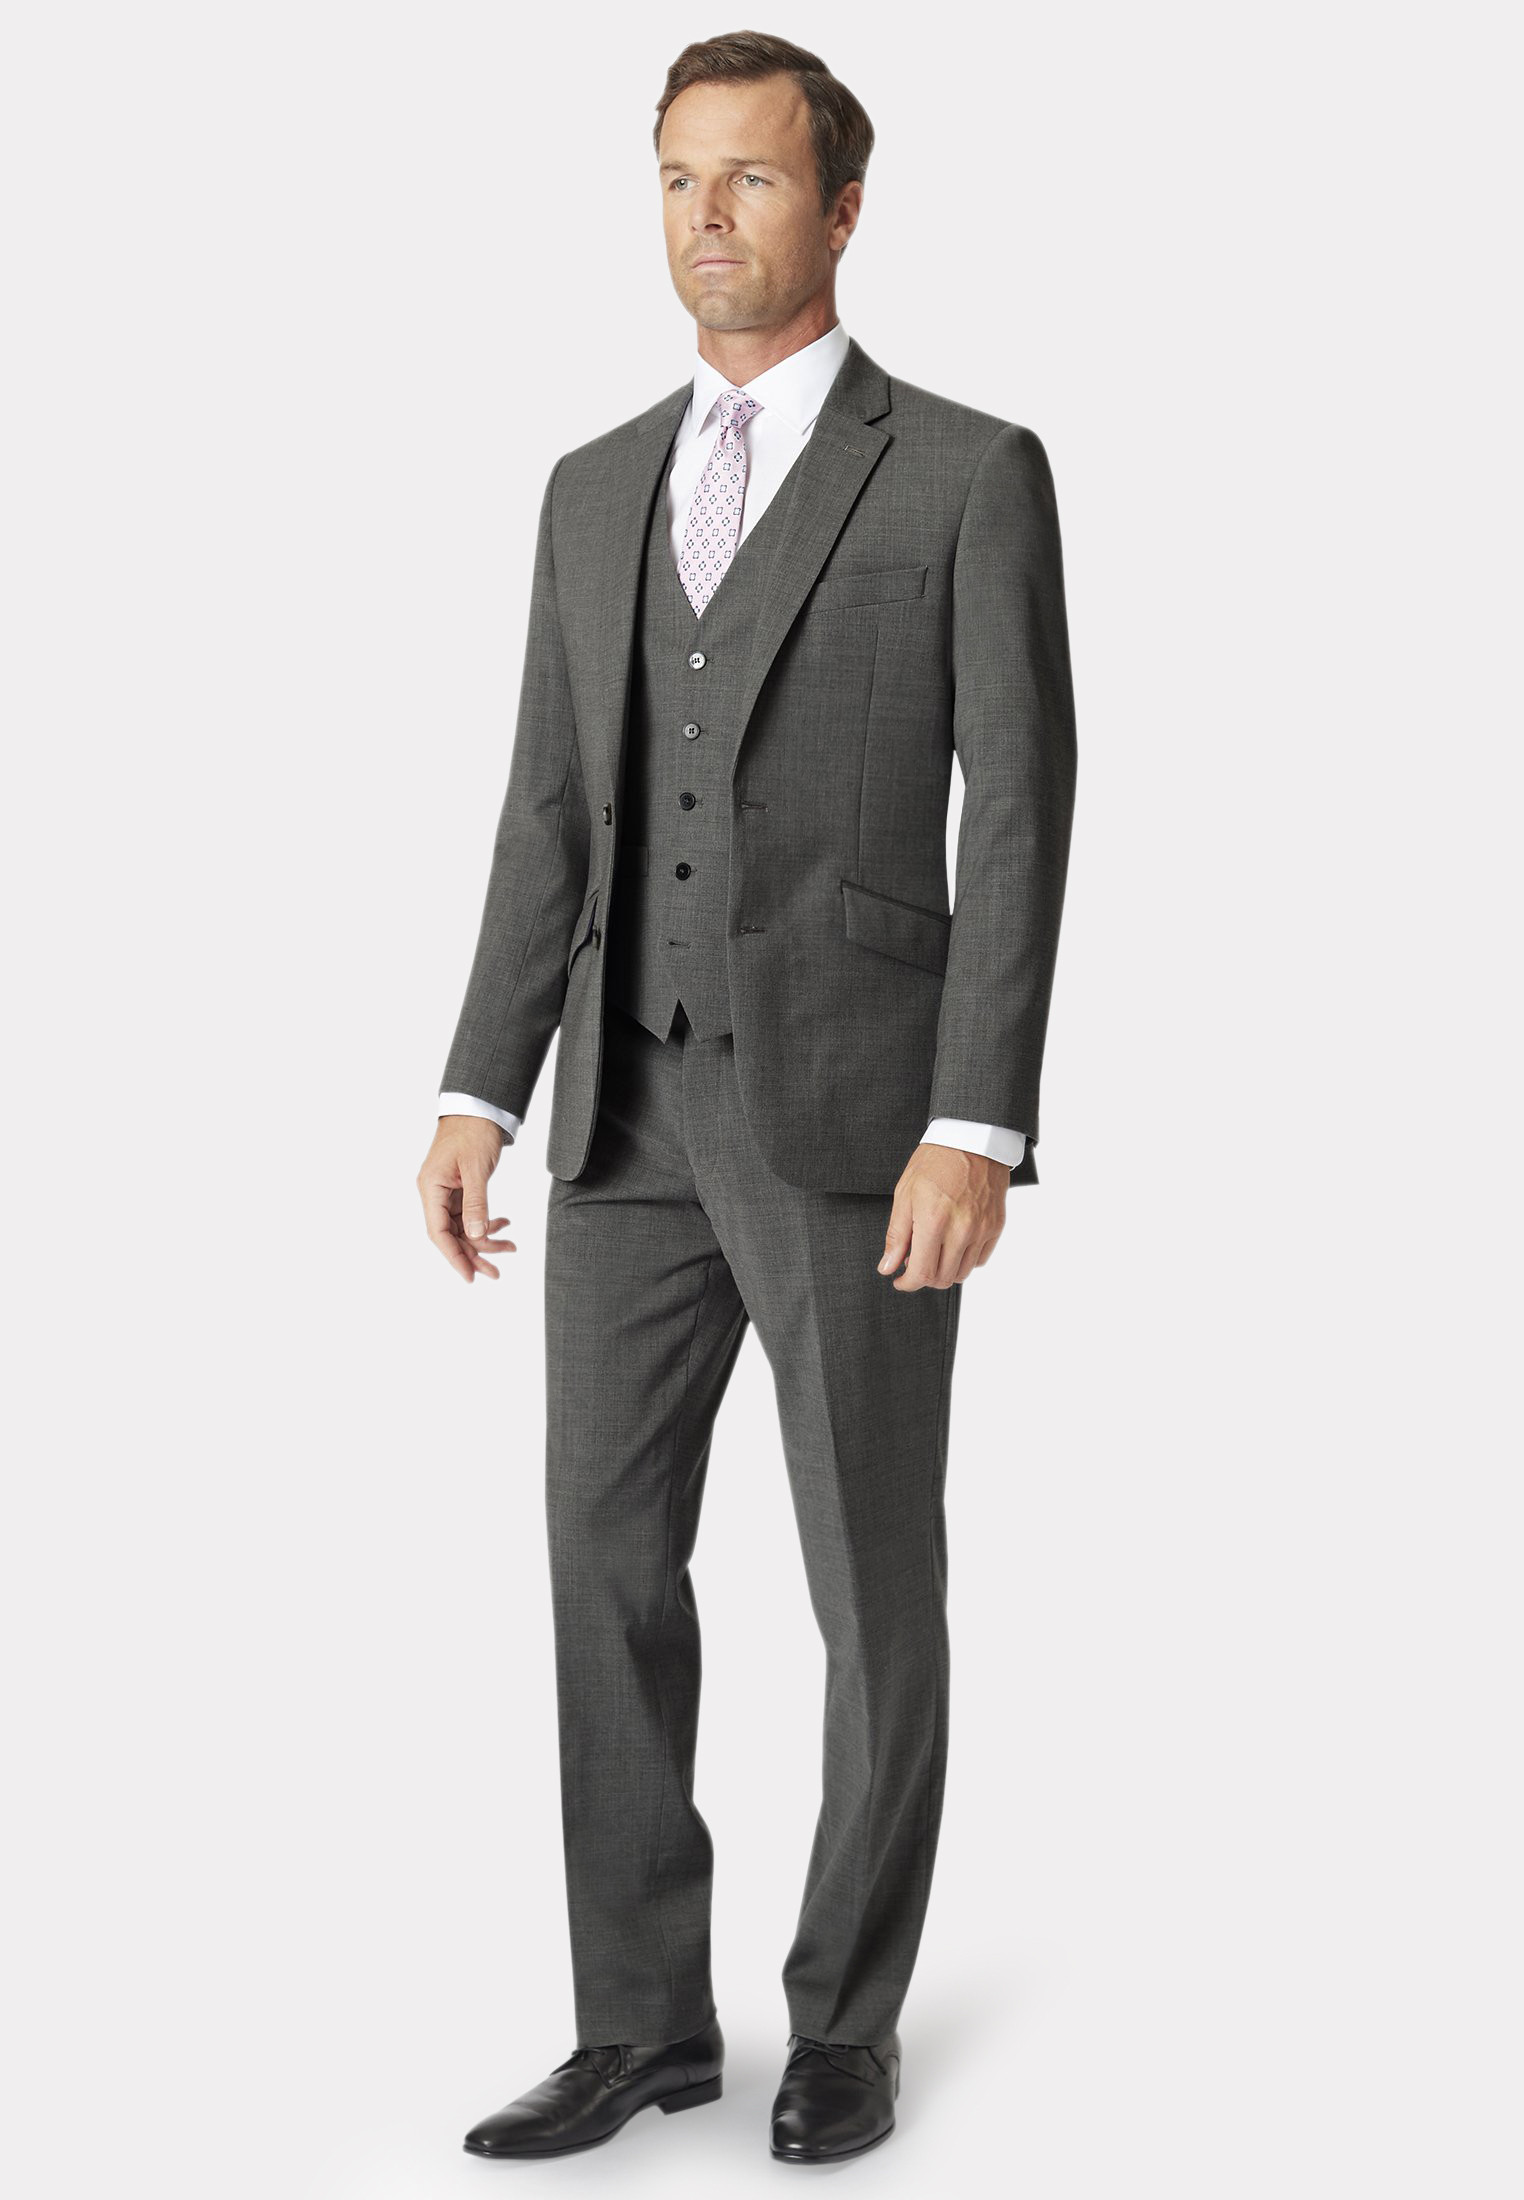 Avalino Grey Three Piece Travel Suit  - Waistcoat Optional